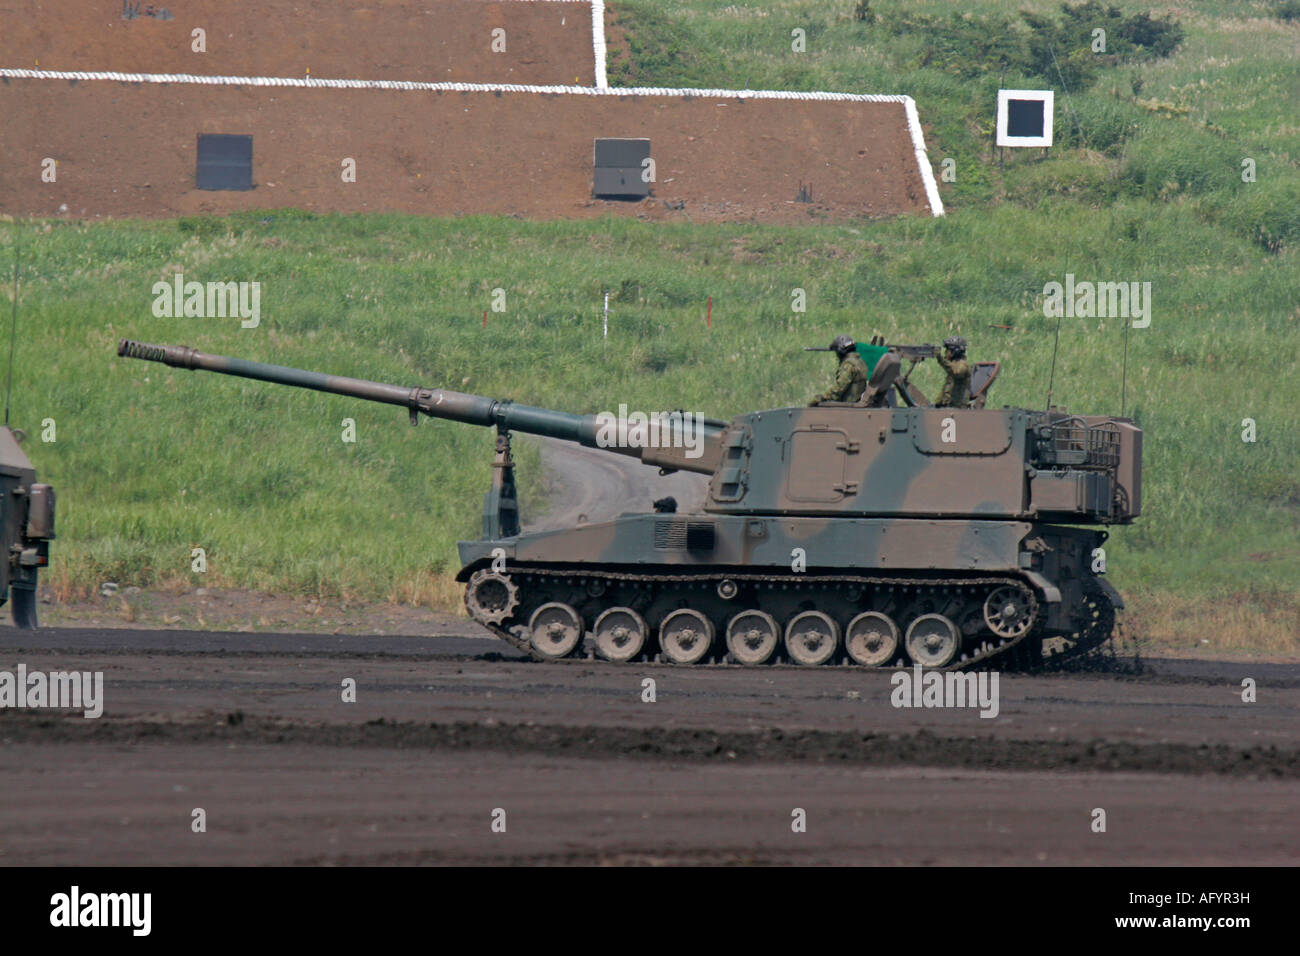 Type 99 155mm Self Propelled Gun of Japan Ground Self Defence Force - Stock Image